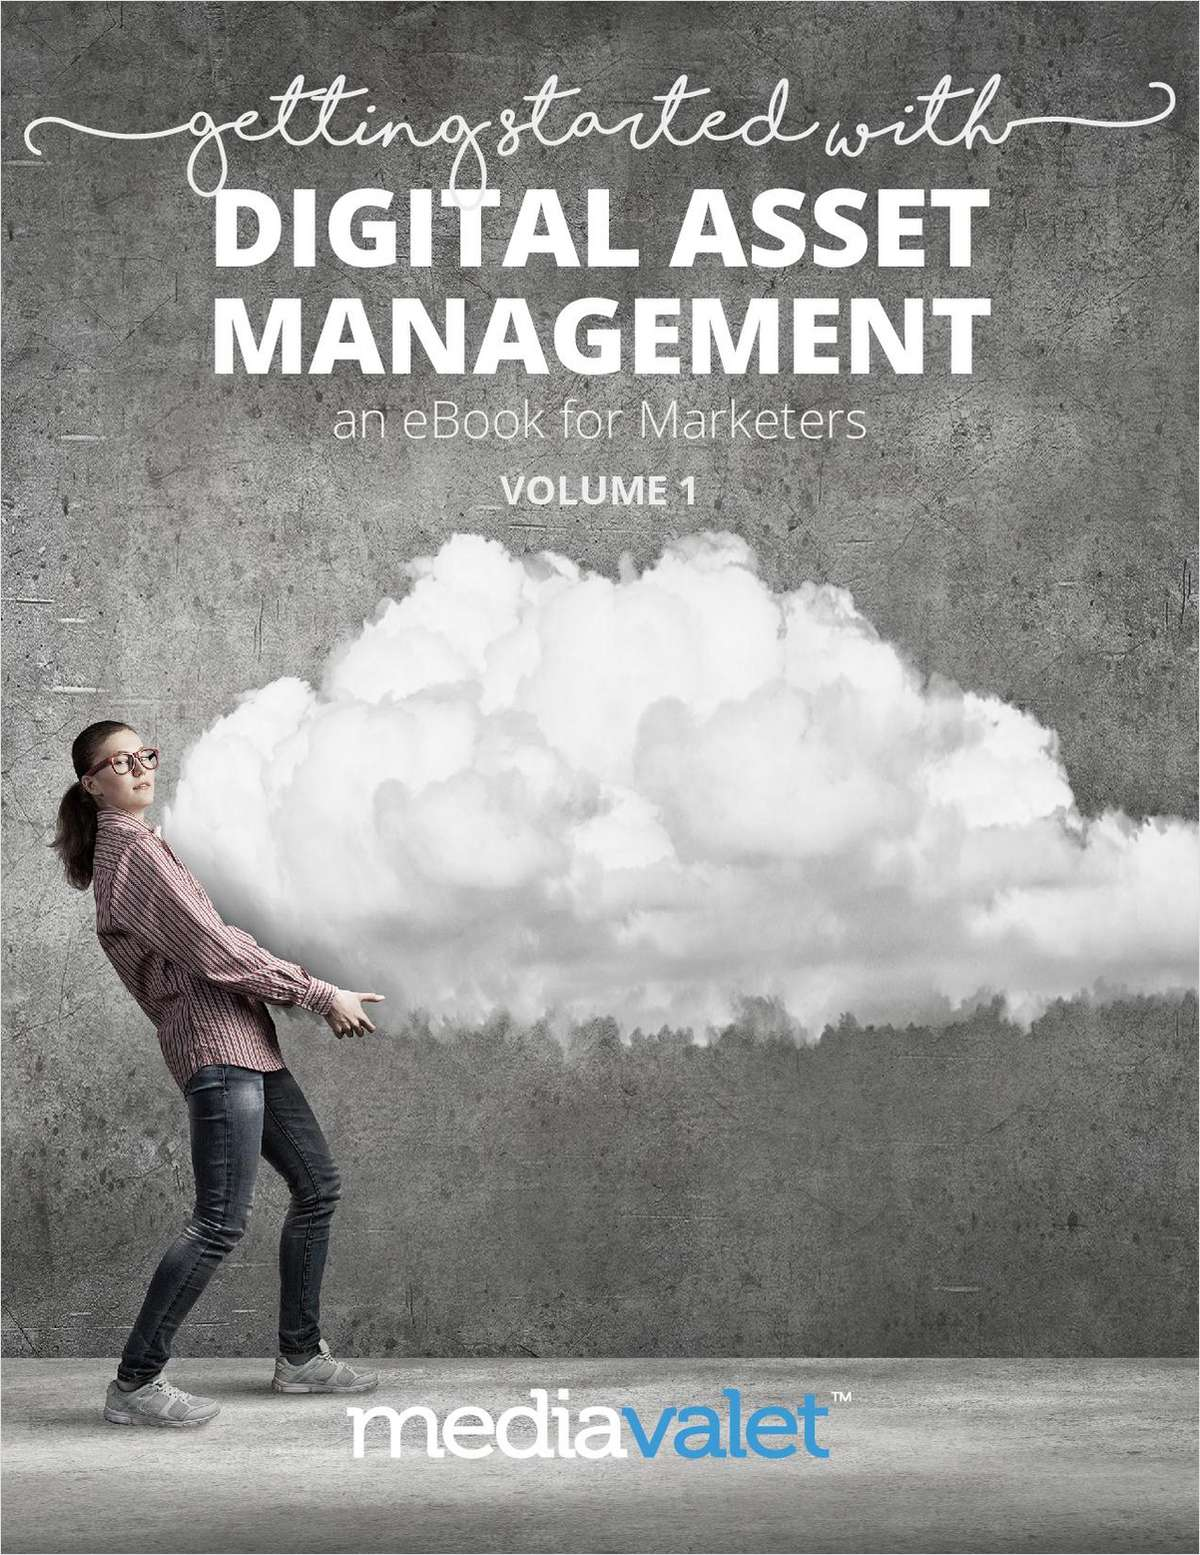 Getting Started with Digital Asset Management - an eBook for Marketers